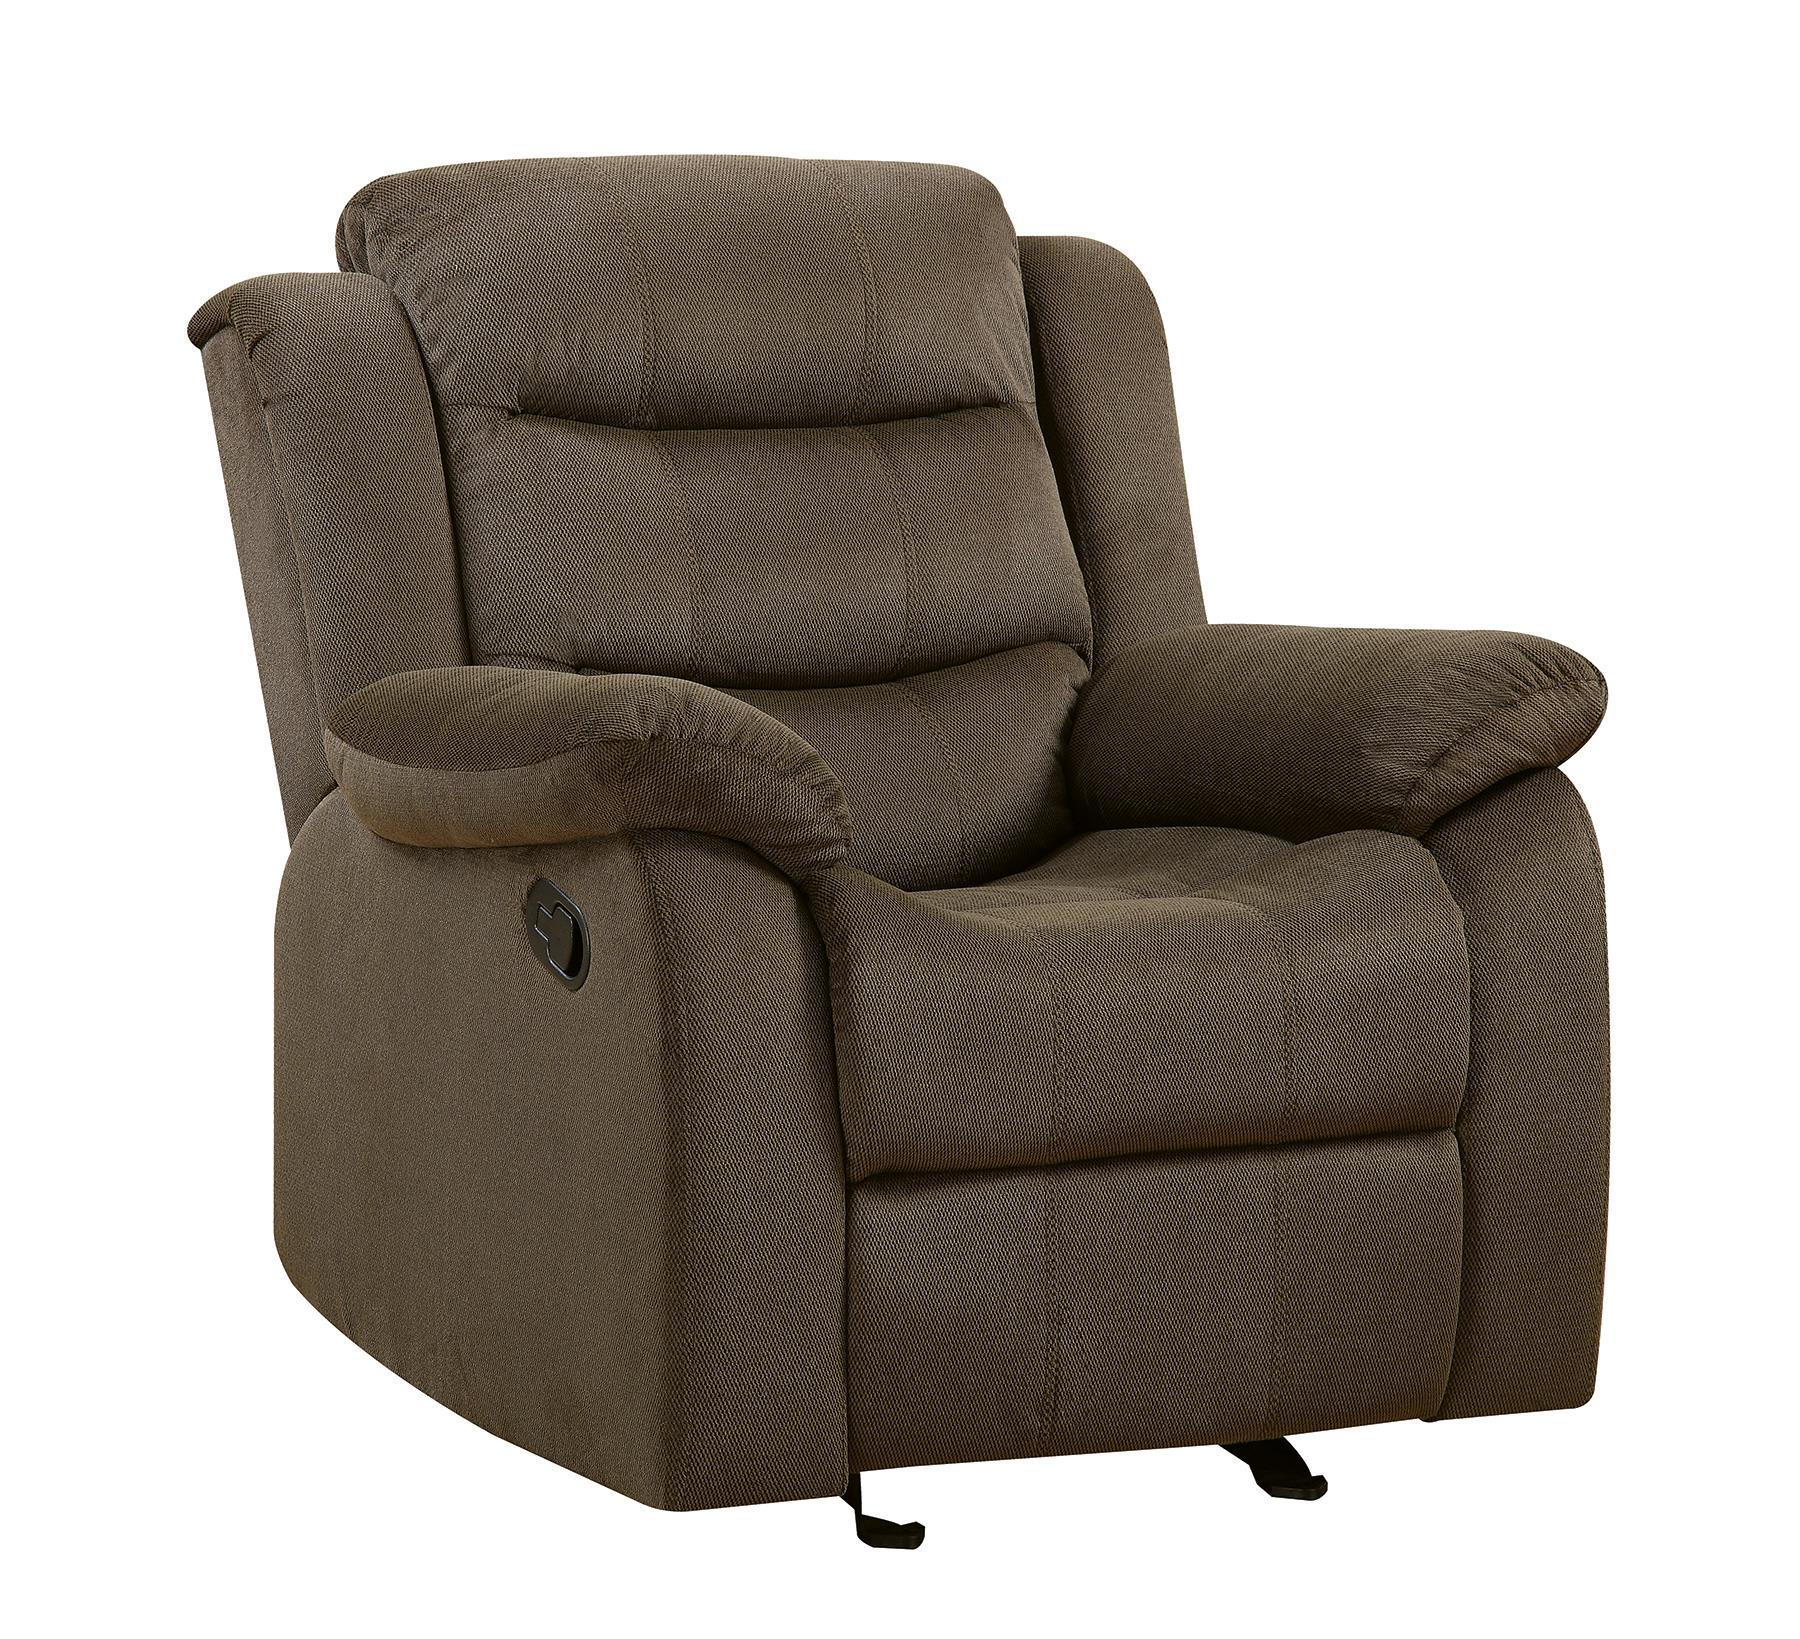 Coaster Rodman Glider Recliner - Item Number: 601883